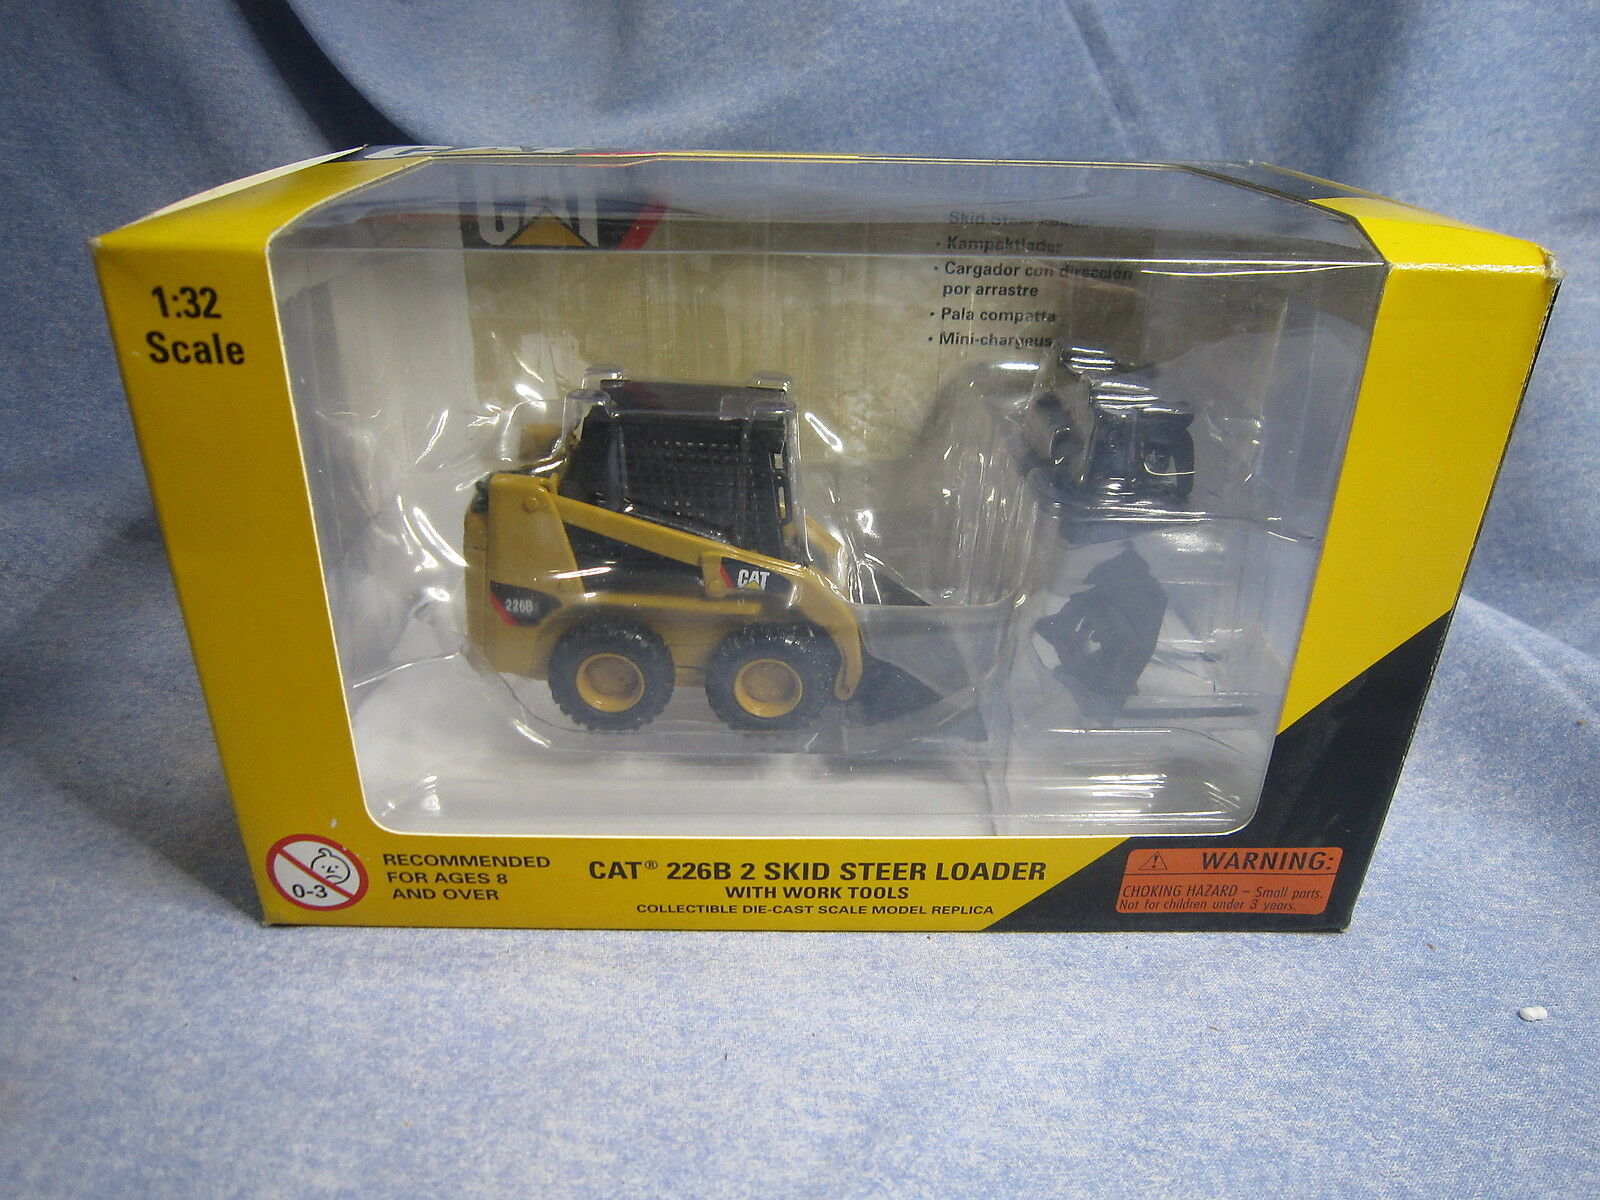 ZA321 ZA321 ZA321 NORSCOT CATERPILLAR 226B 2 SKID STEER LOADER MINI CHARGEUSE REF 55036 1 32 0a1b29